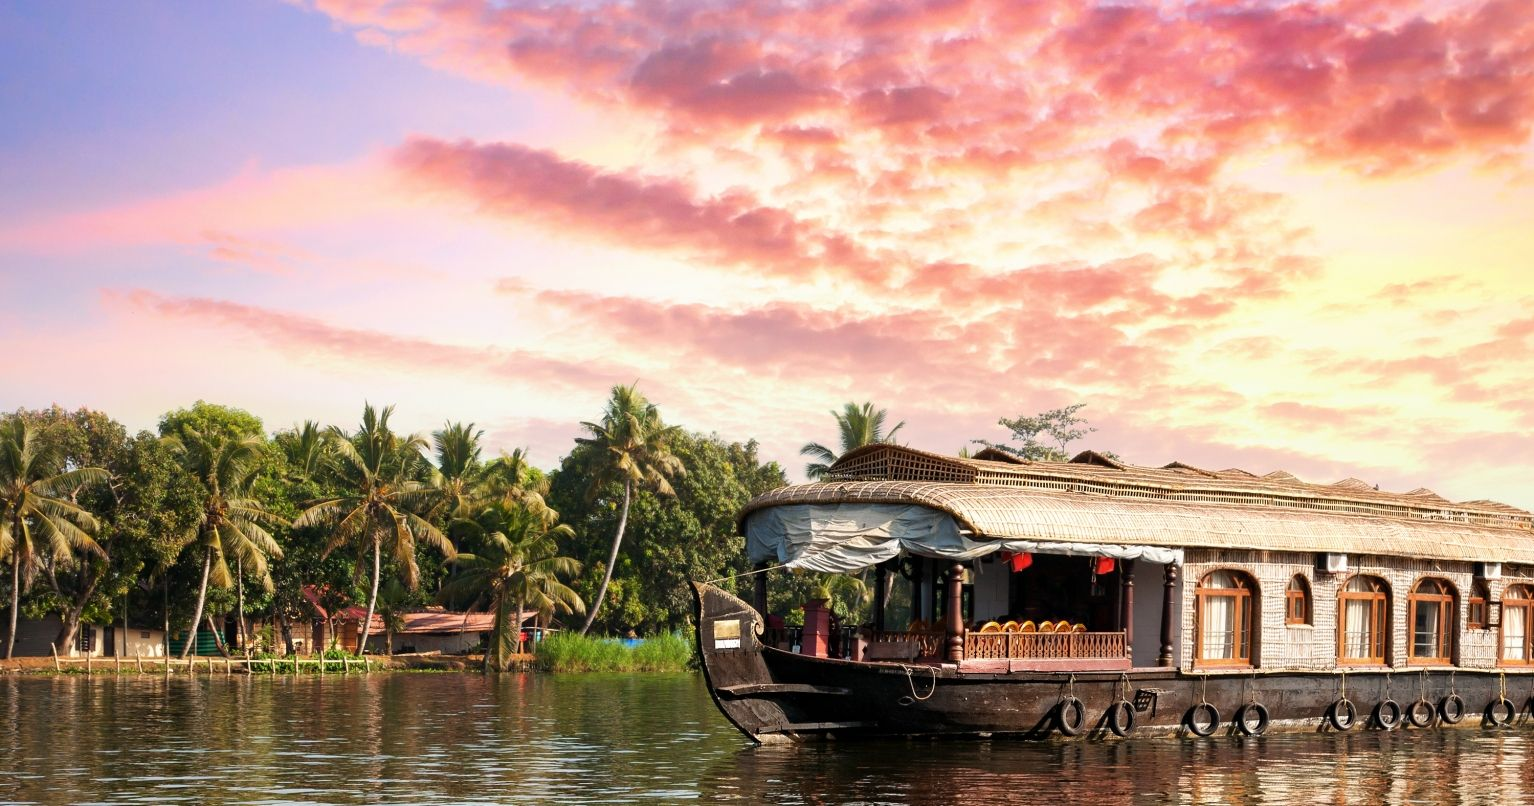 Alappuzha Backwaters Houseboat India experience gifts